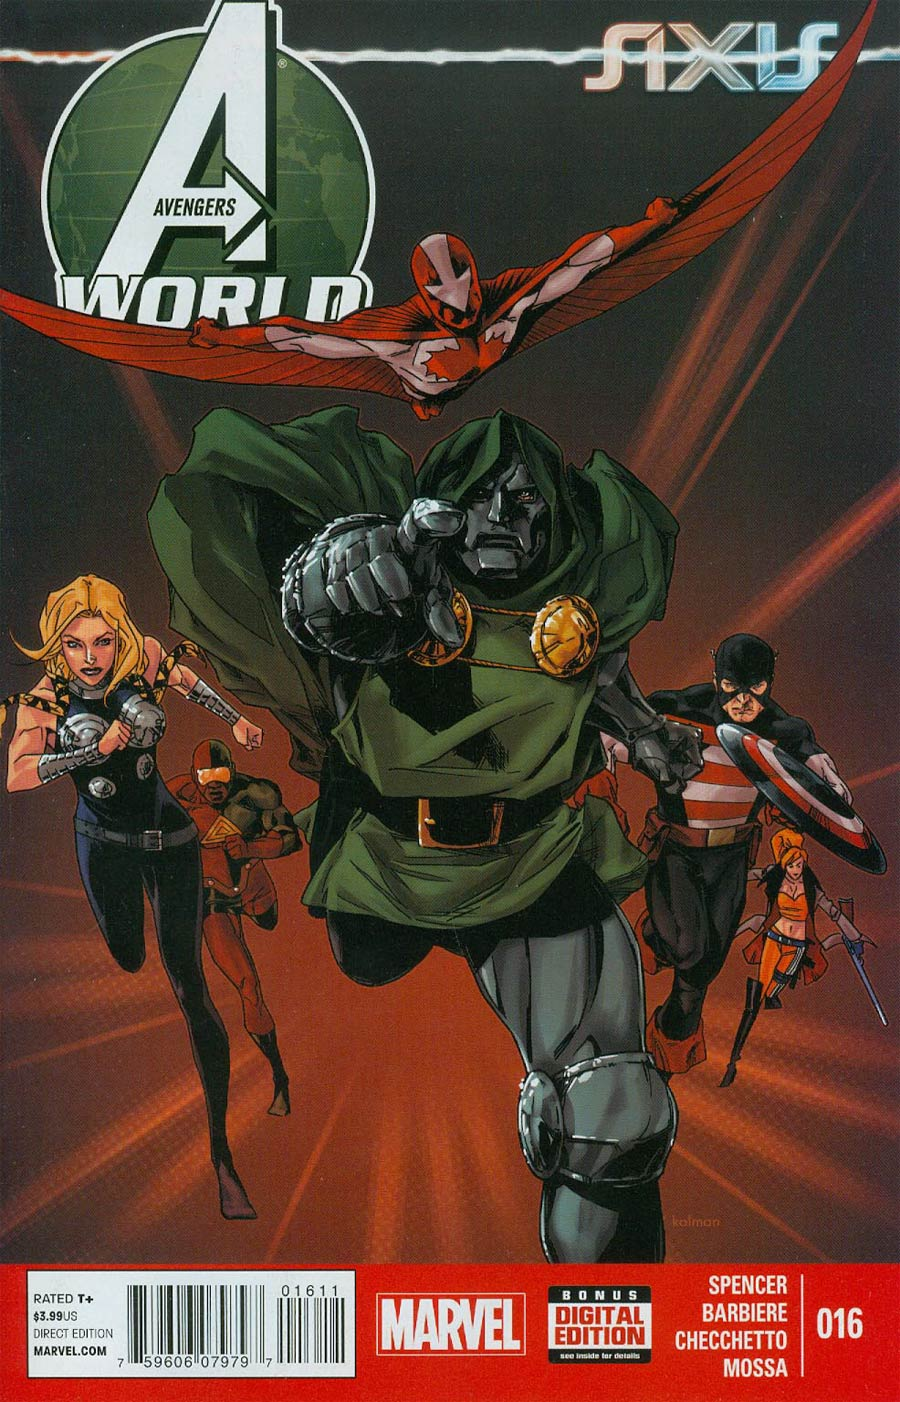 Avengers World #16 (AXIS Tie-In)